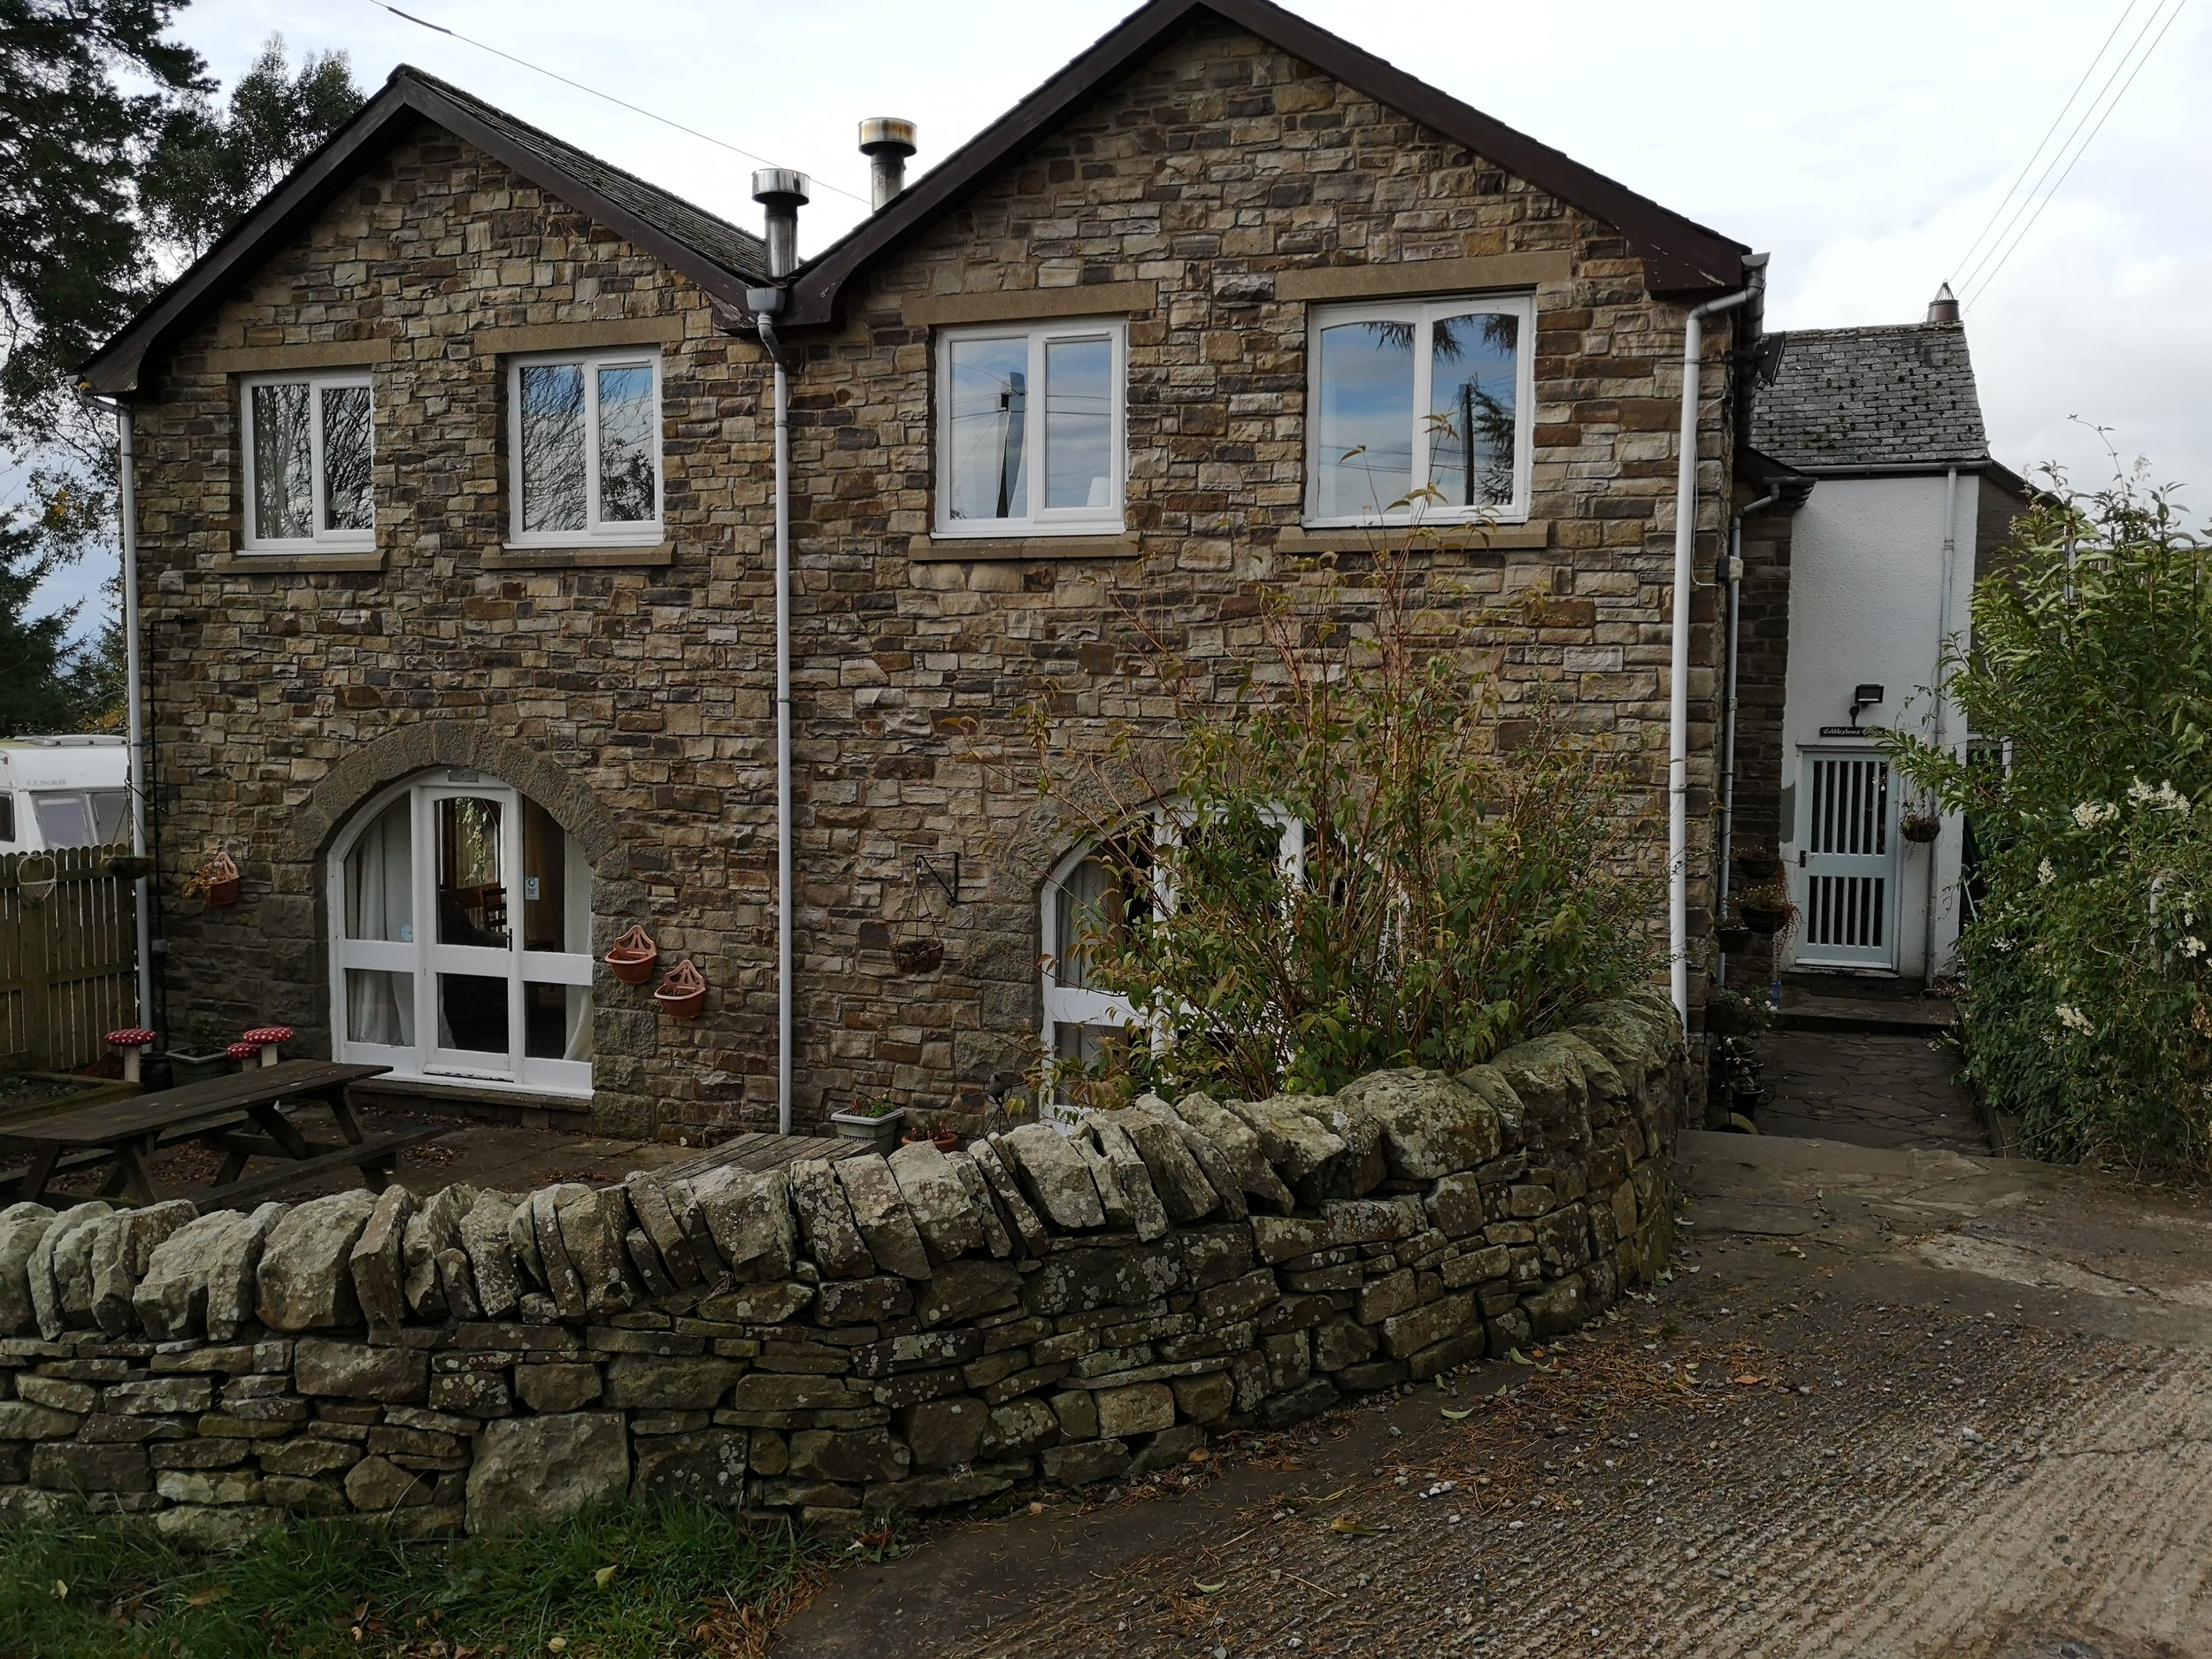 Ald White Craig Holiday Cottages